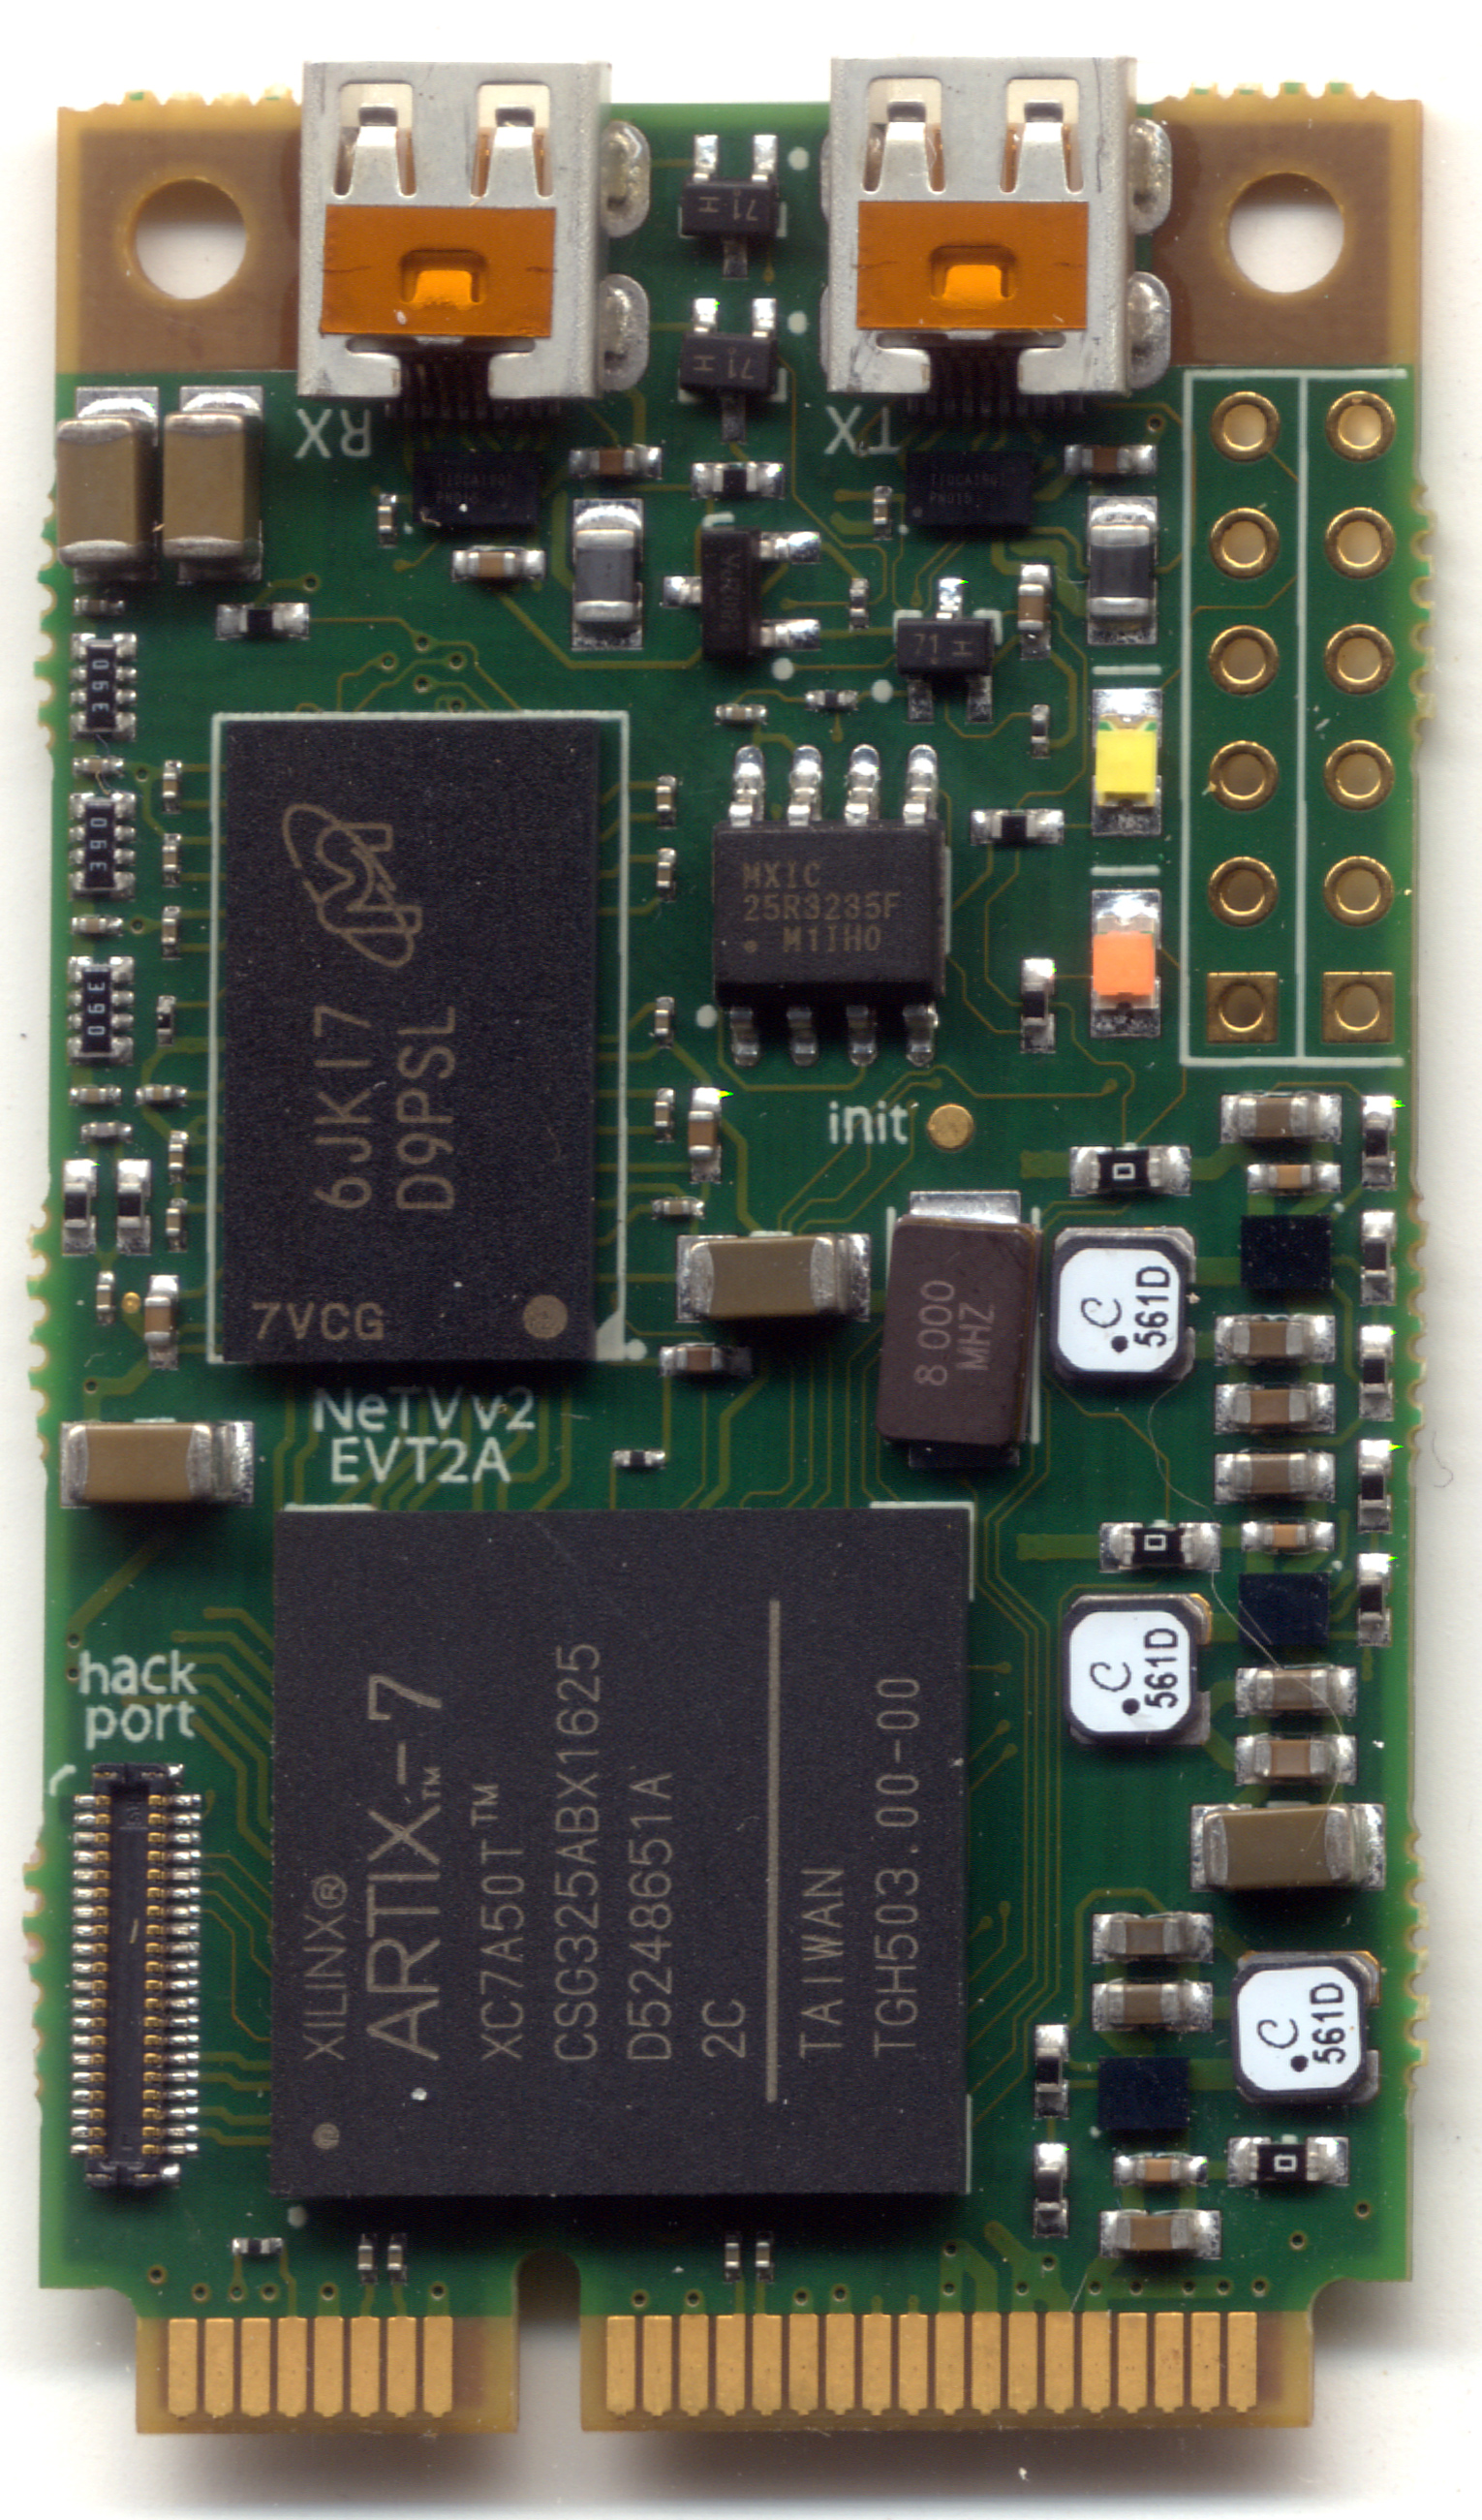 Netv Bunnies Blog Circuit Board To Hold Your Memories This Creative Photo Frame Is Alphamax Llc Now Has Details Of The Netv2 Live Including Links Preliminary Schematics And Pcb Source Files